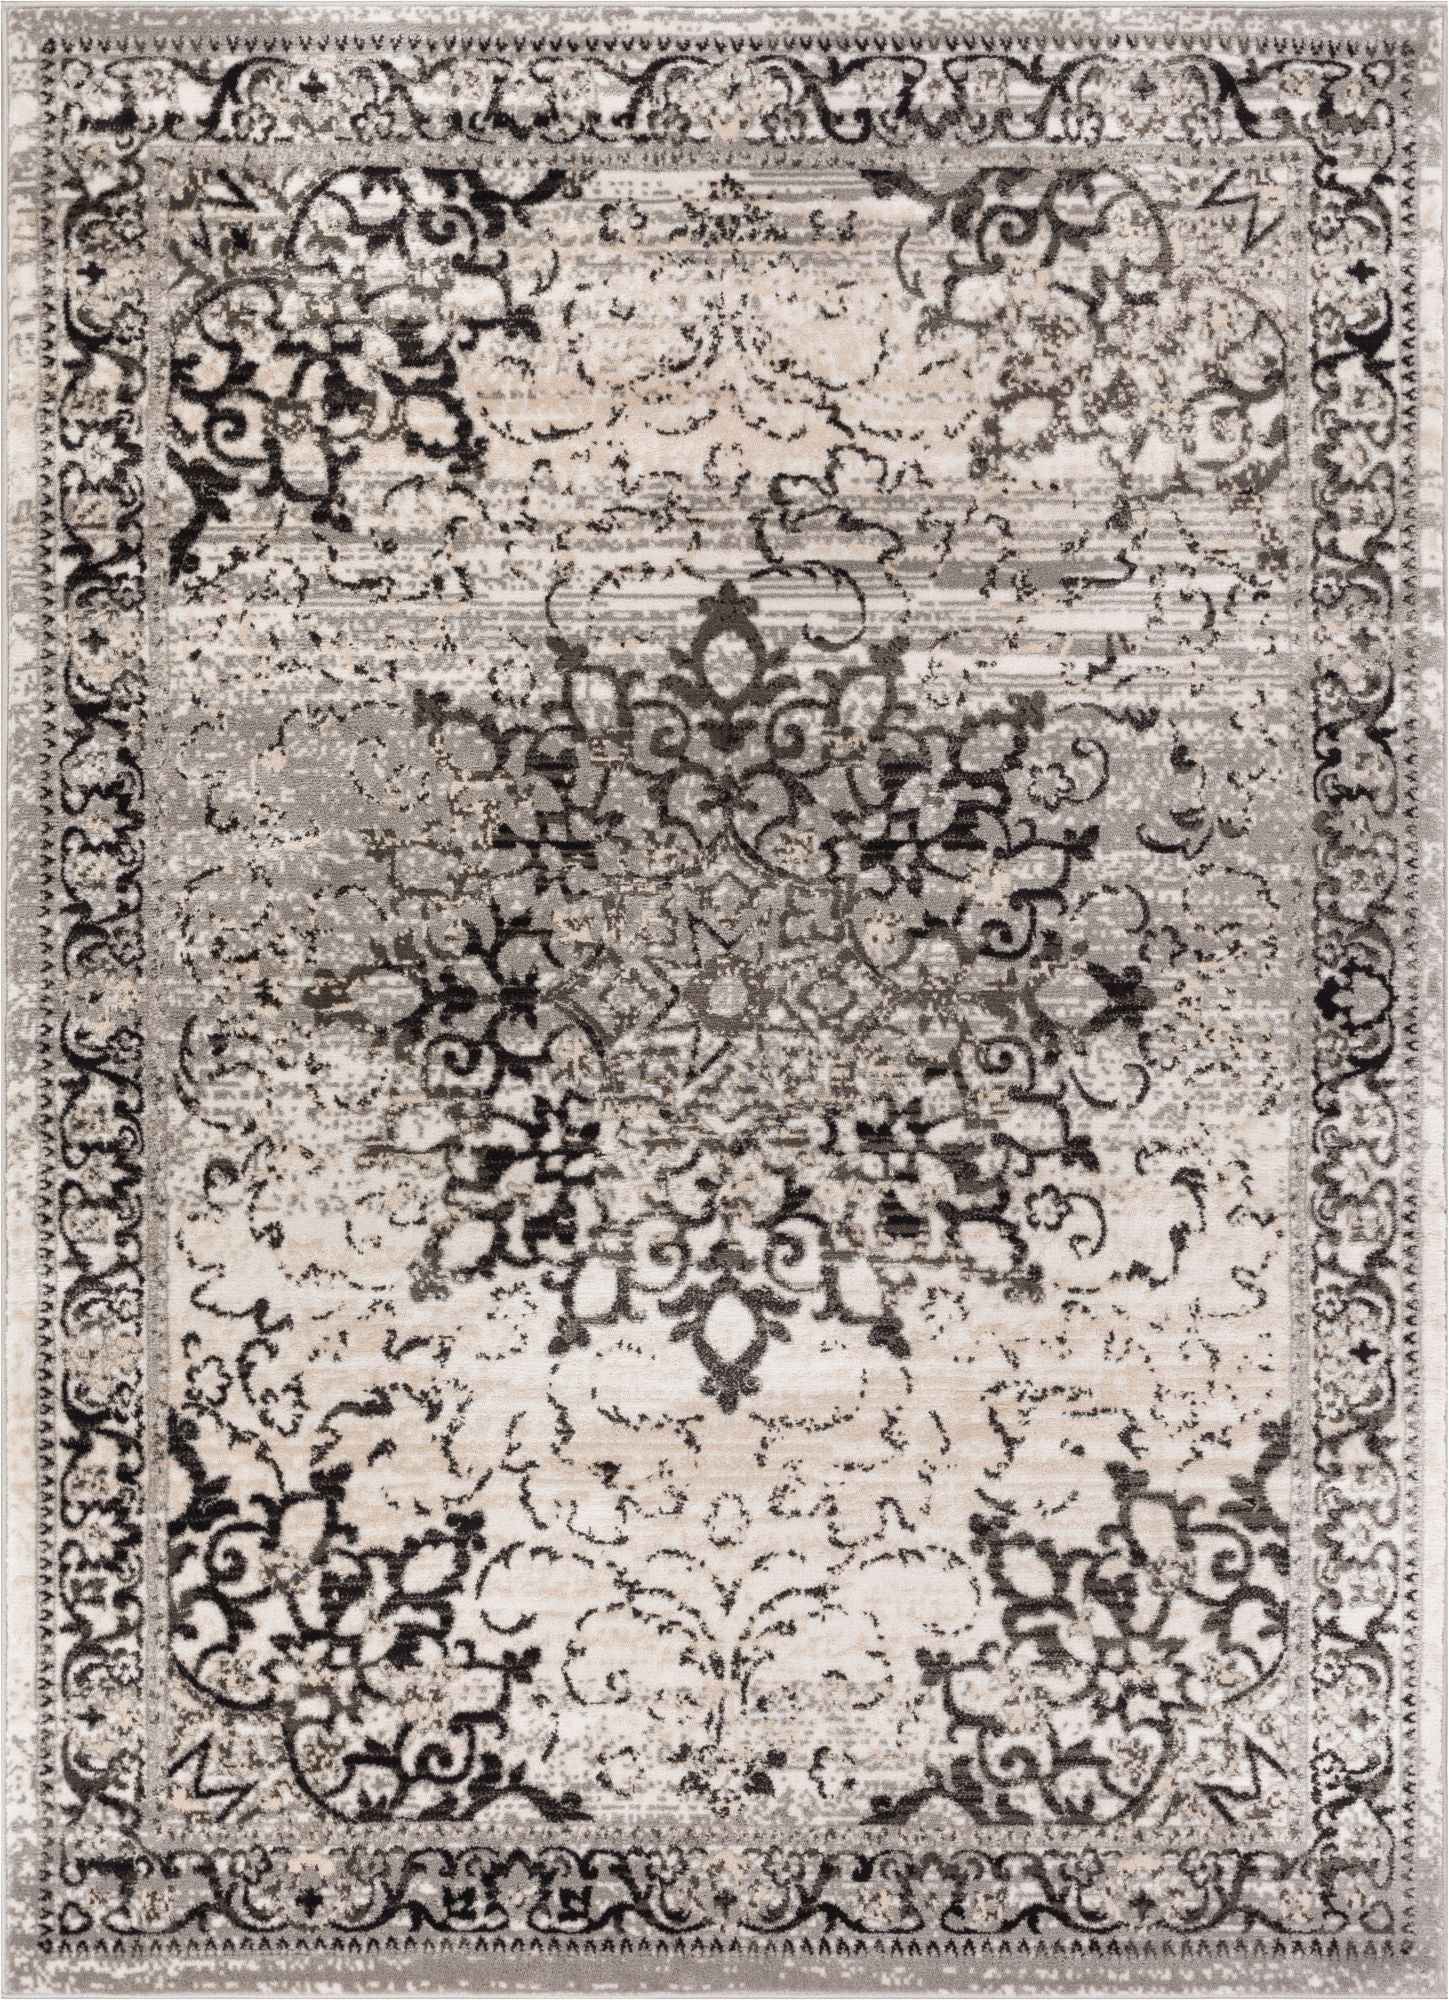 Well Woven's Sultana Grey rug.